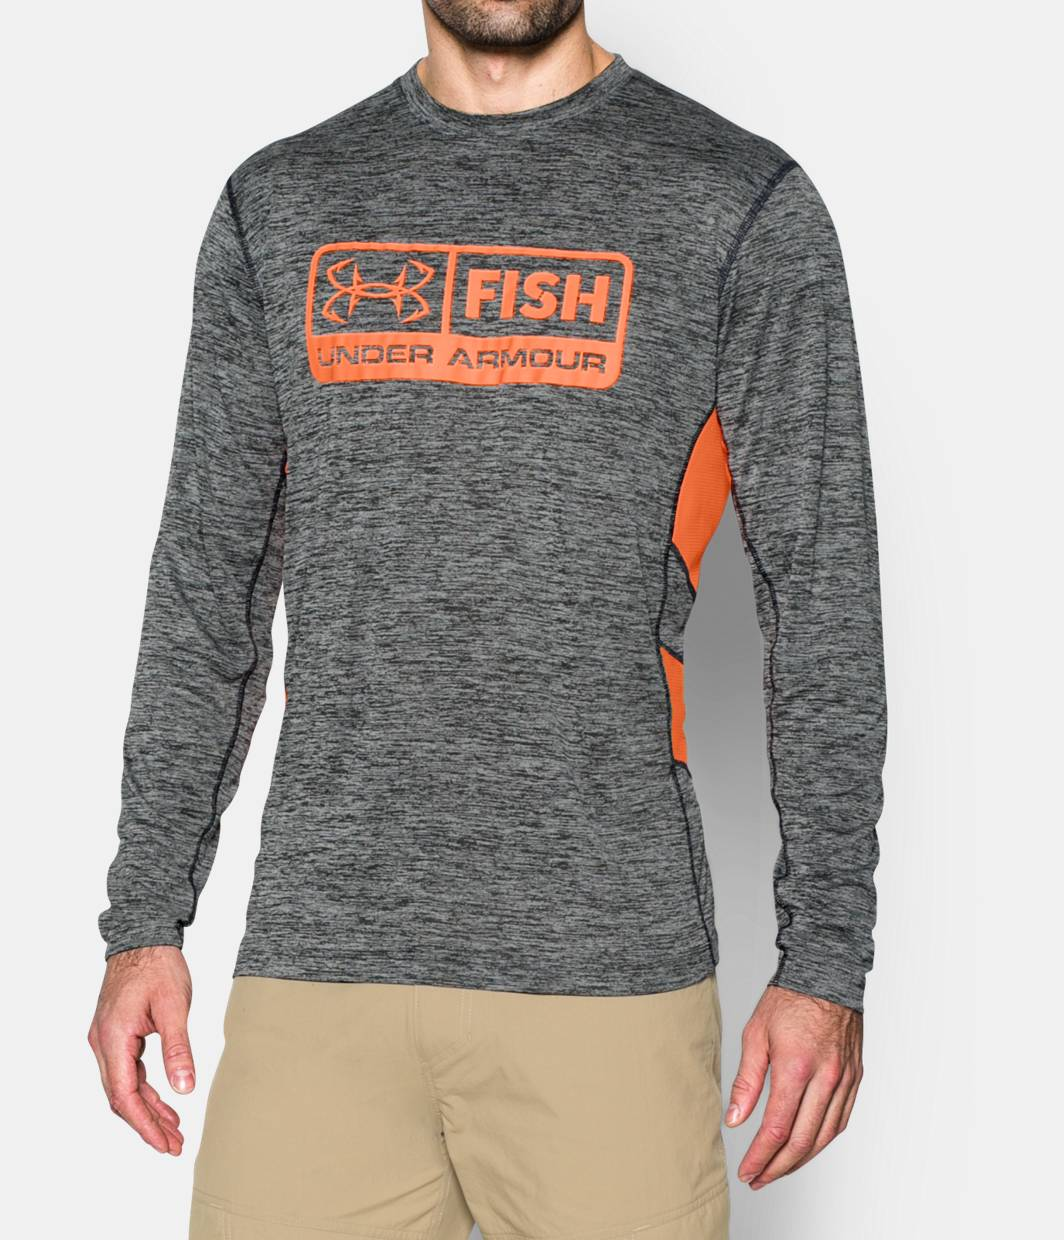 Men s ua fish hunter long sleeve t shirt under armour us for Under armour fishing shirts clearance